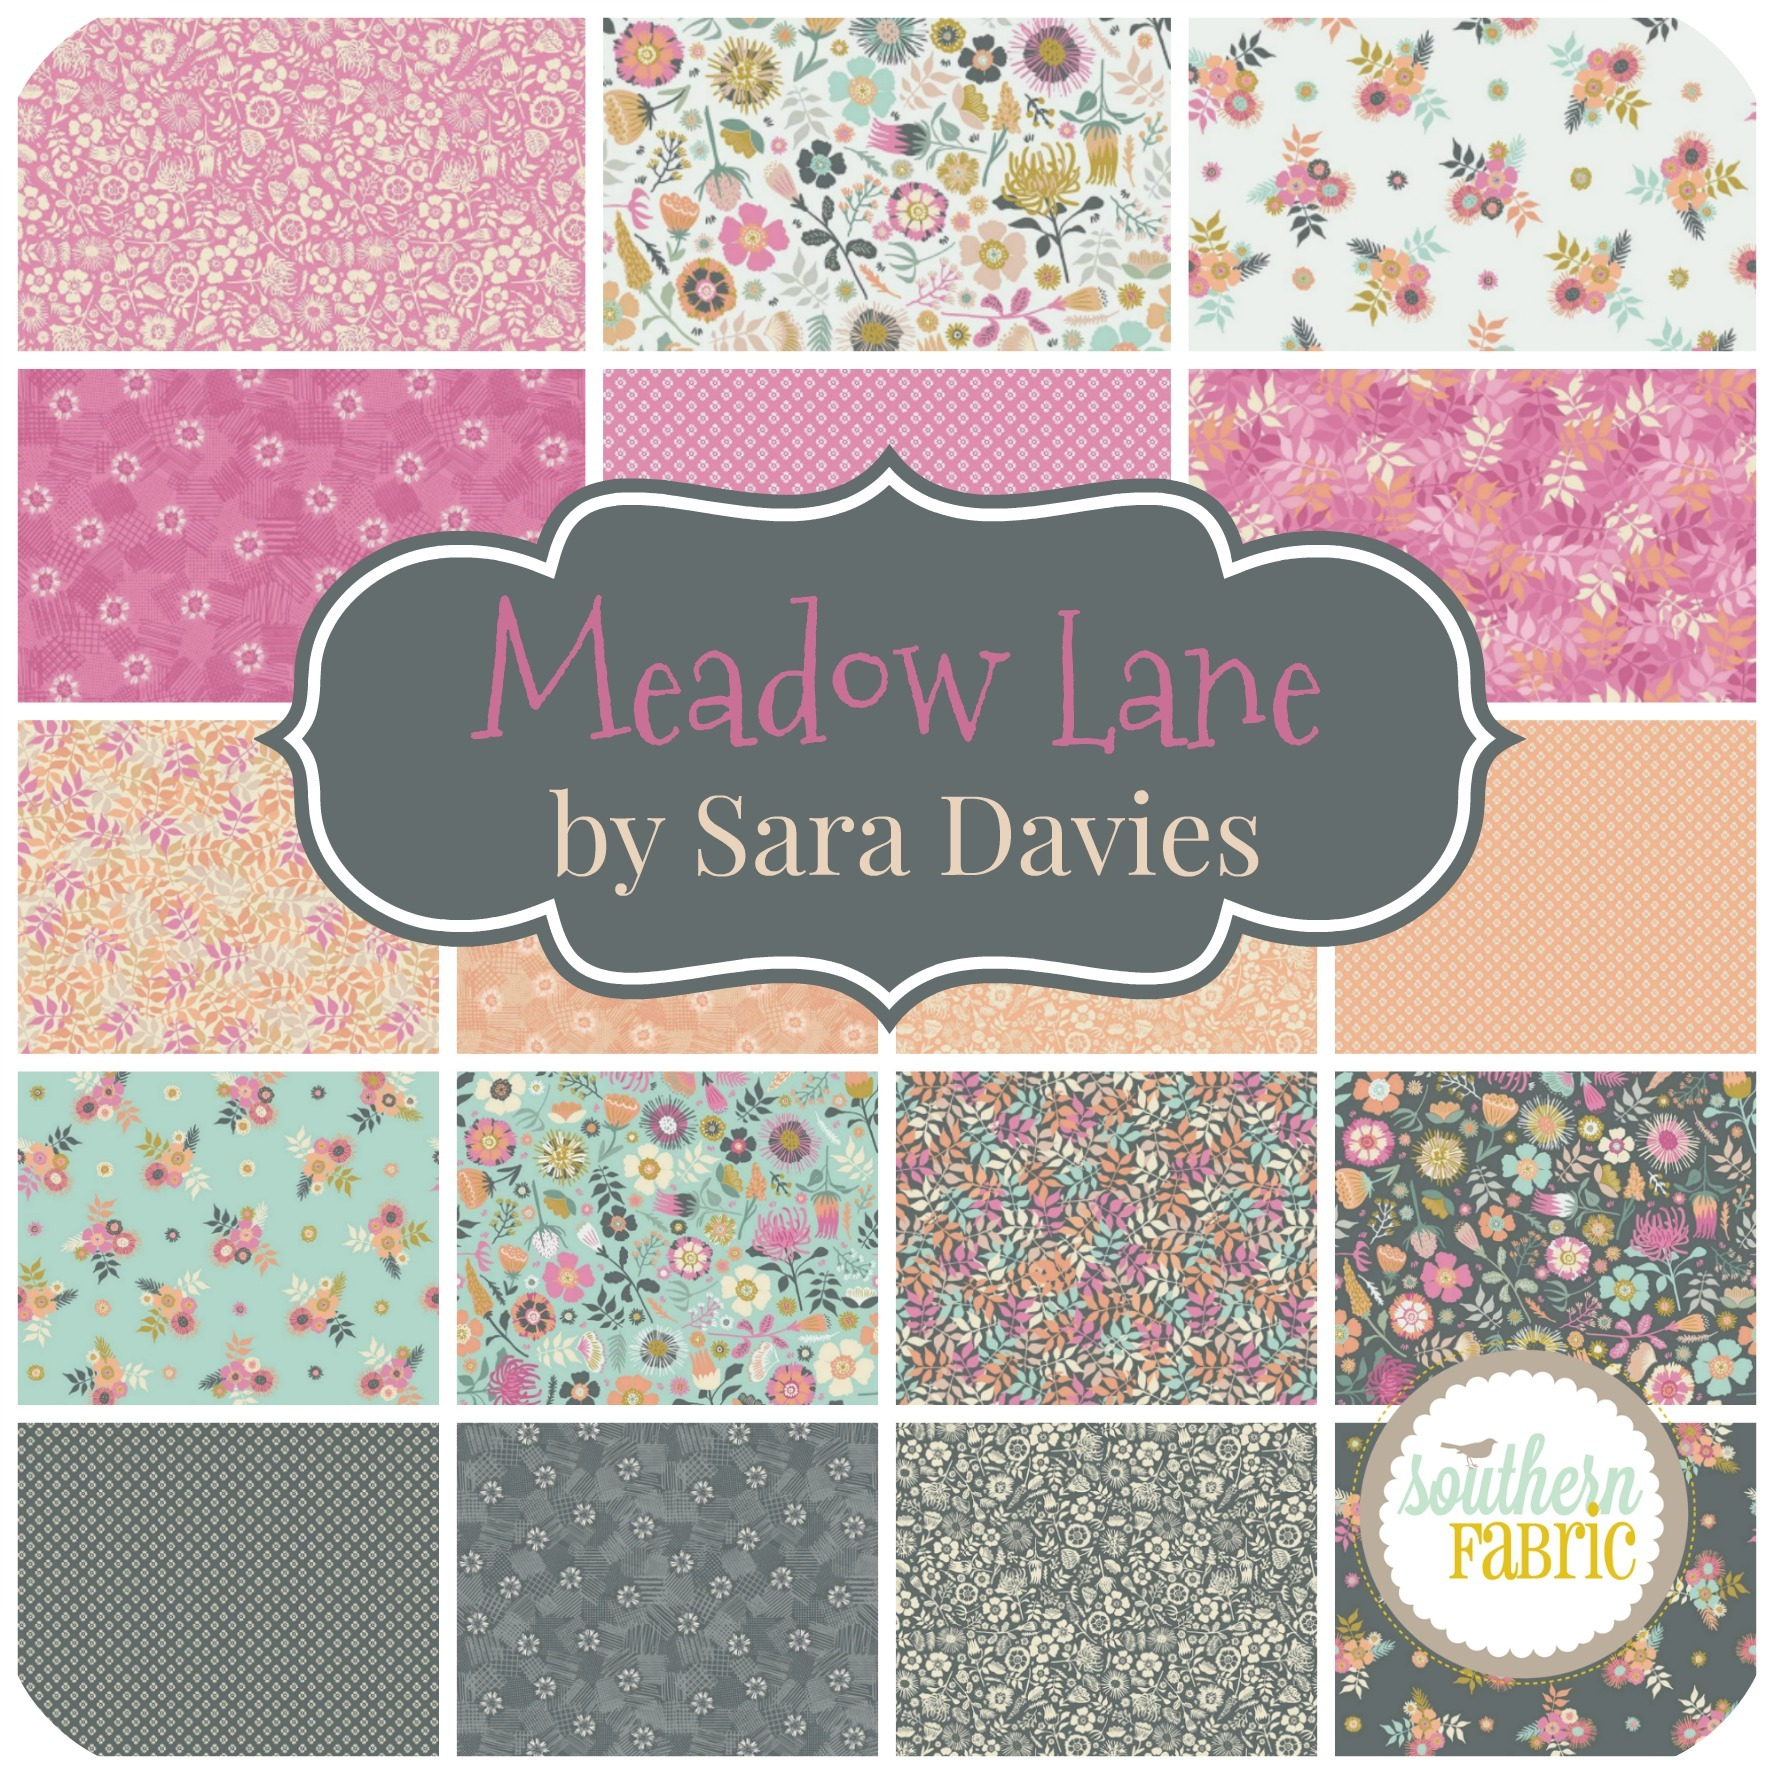 Meadow Lane by Sara Davies